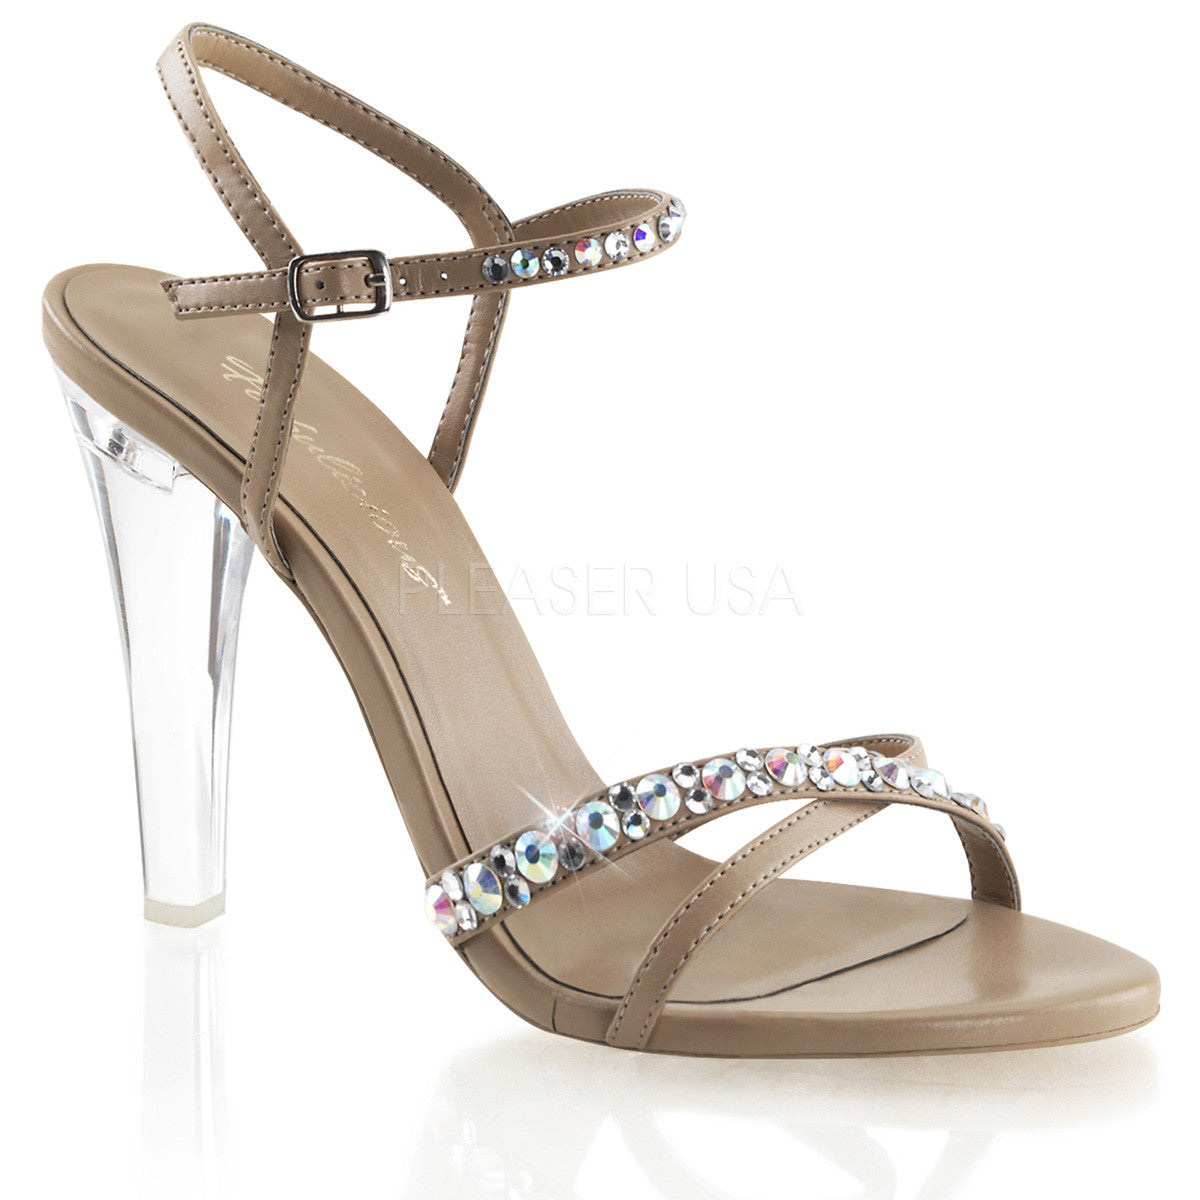 Fabulicious,FABULICIOUS CLEARLY-415 Taupe Pu Ankle Strap Sandals - Shoecup.com